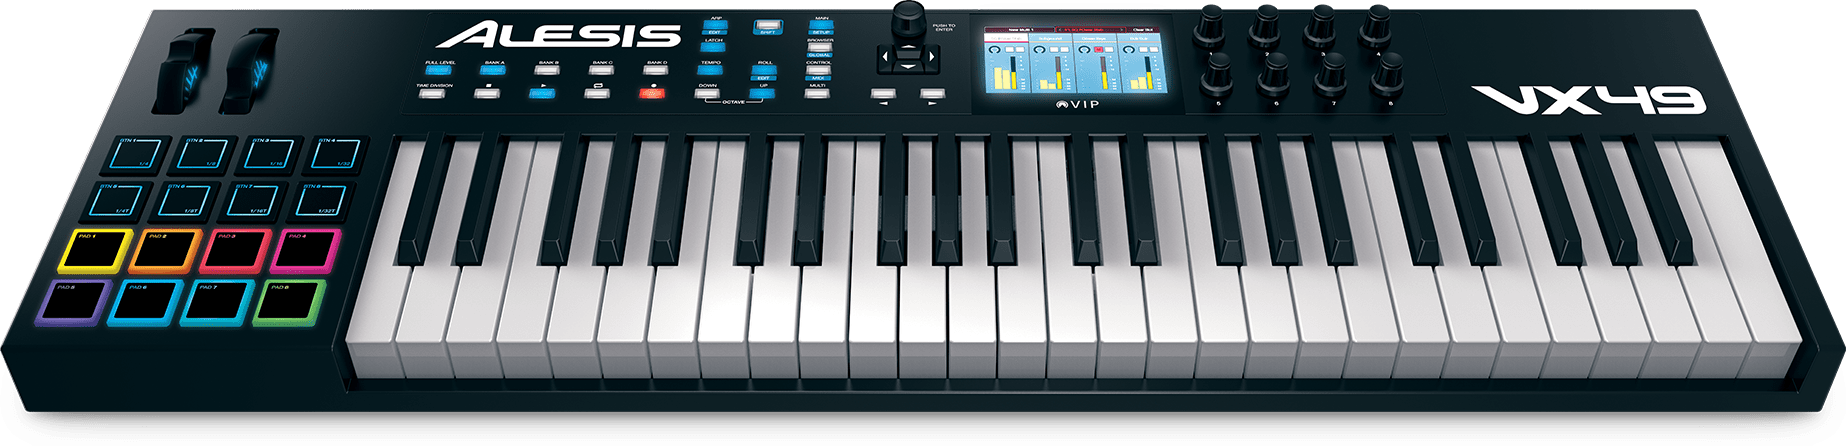 10 Best MIDI Keyboard Controllers Of 2018! – Cymatics fm